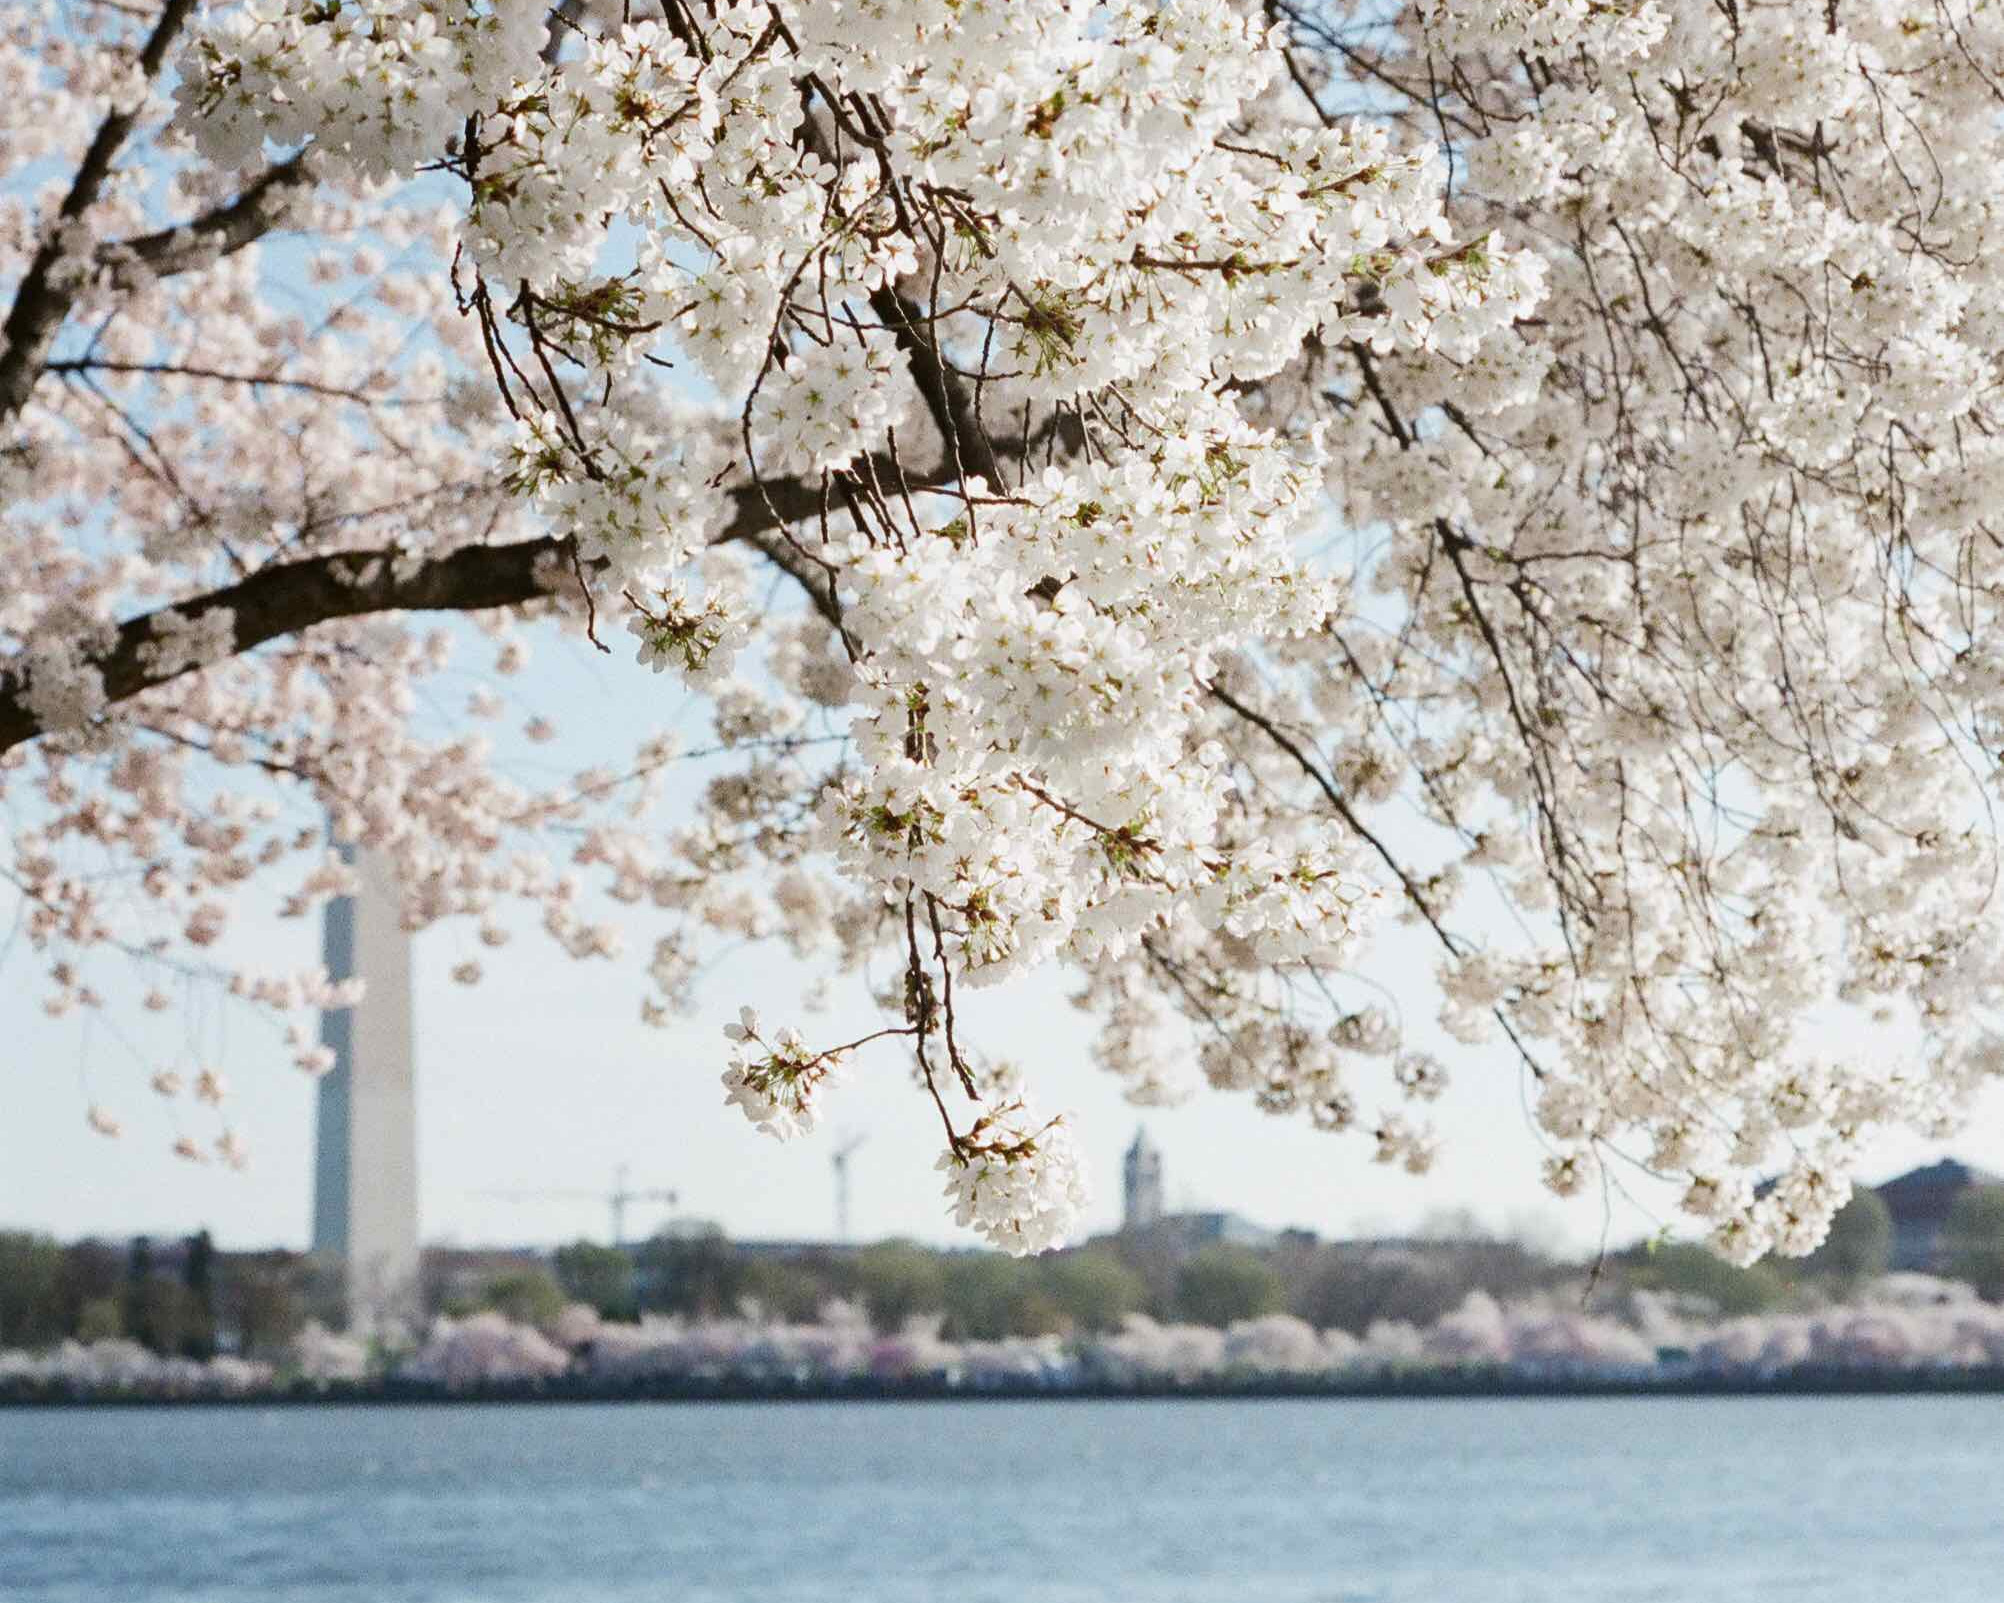 The Tidal Basin full bloom. Photo by Hannah Hudson.